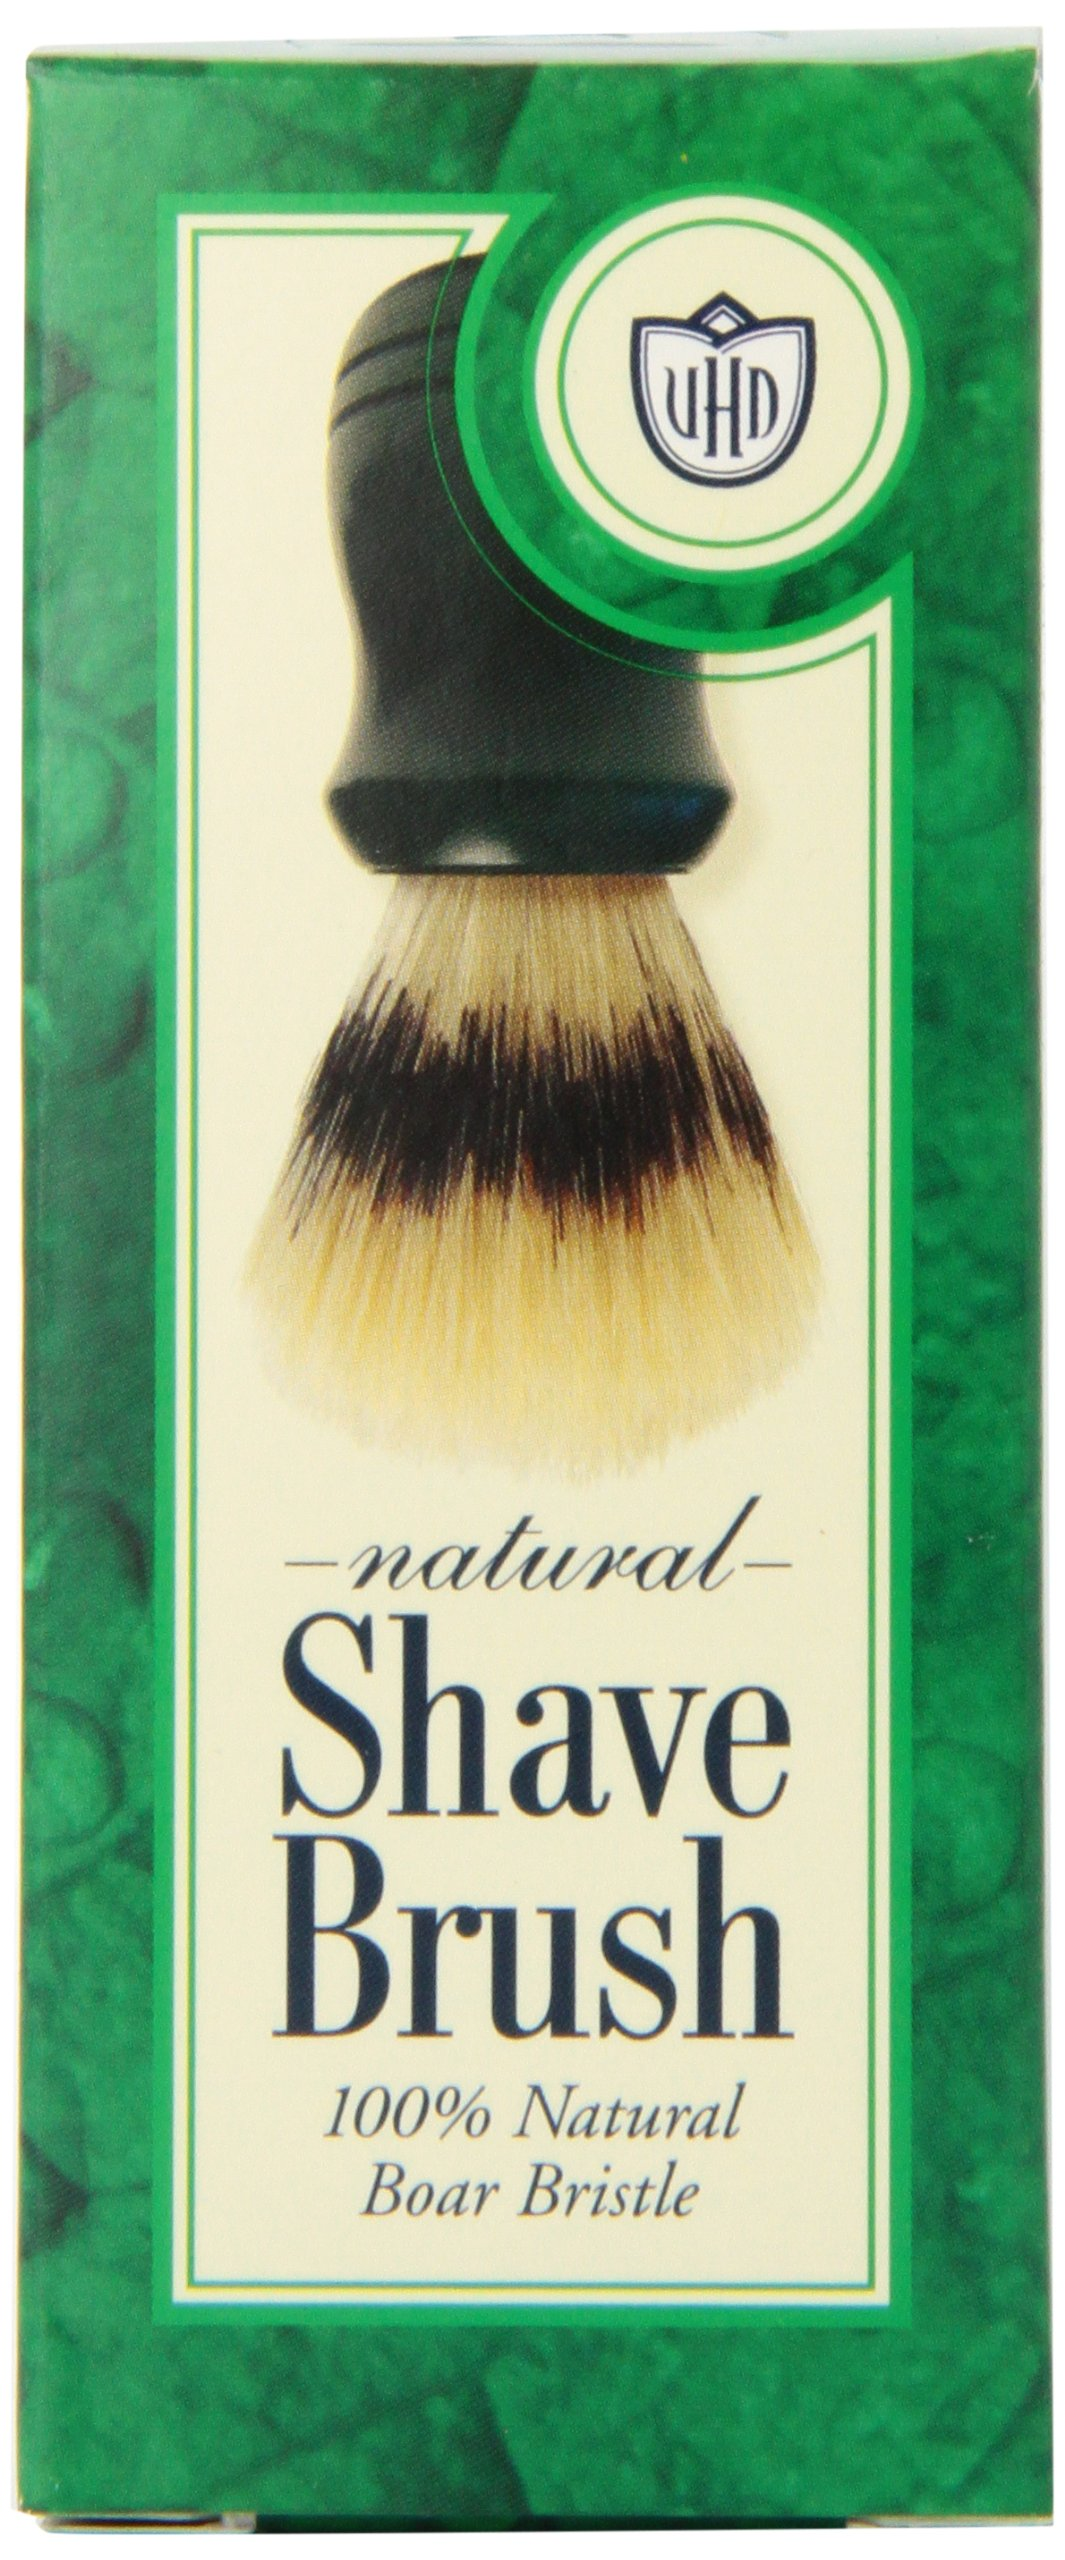 Van Der Hagen Natural Boar Shave Brush, 1 Count